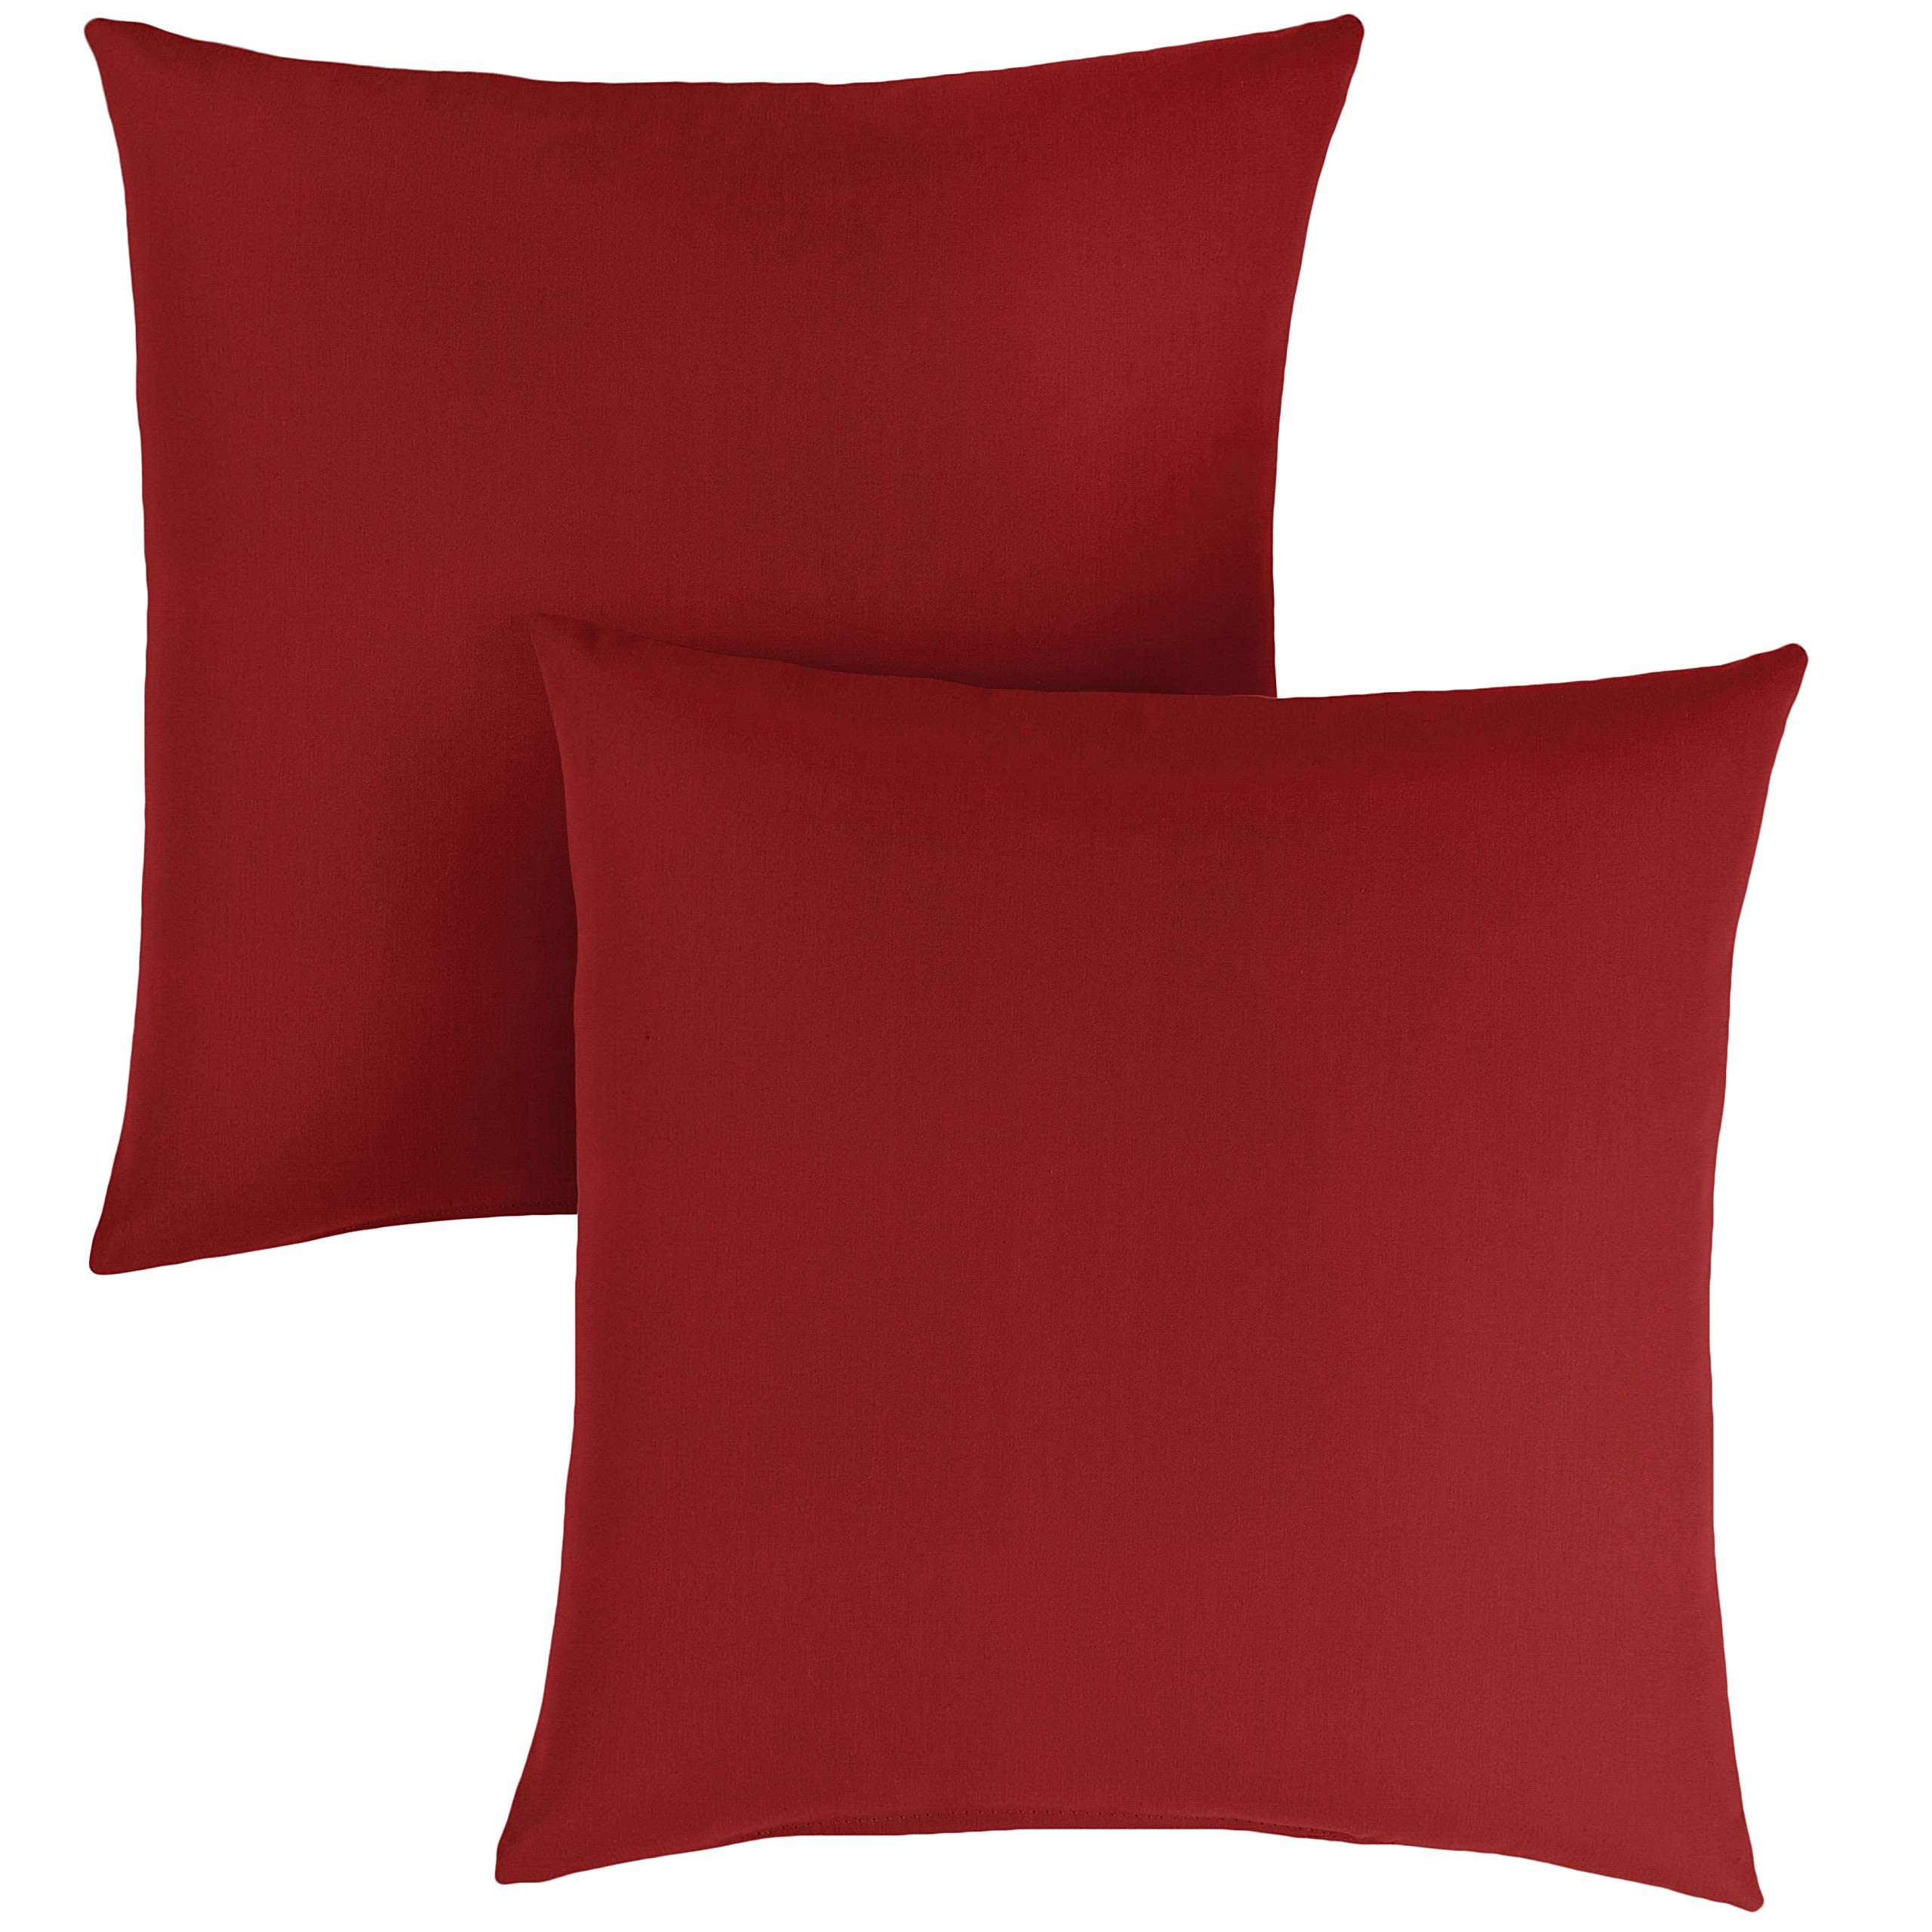 1101Design Sunbrella Canvas Jockey Red Knife Edge Decorative Indoor/Outdoor Square Throw Pillows, Perfect for Patio Décor - Jockey Red 20'' (Set of 2)